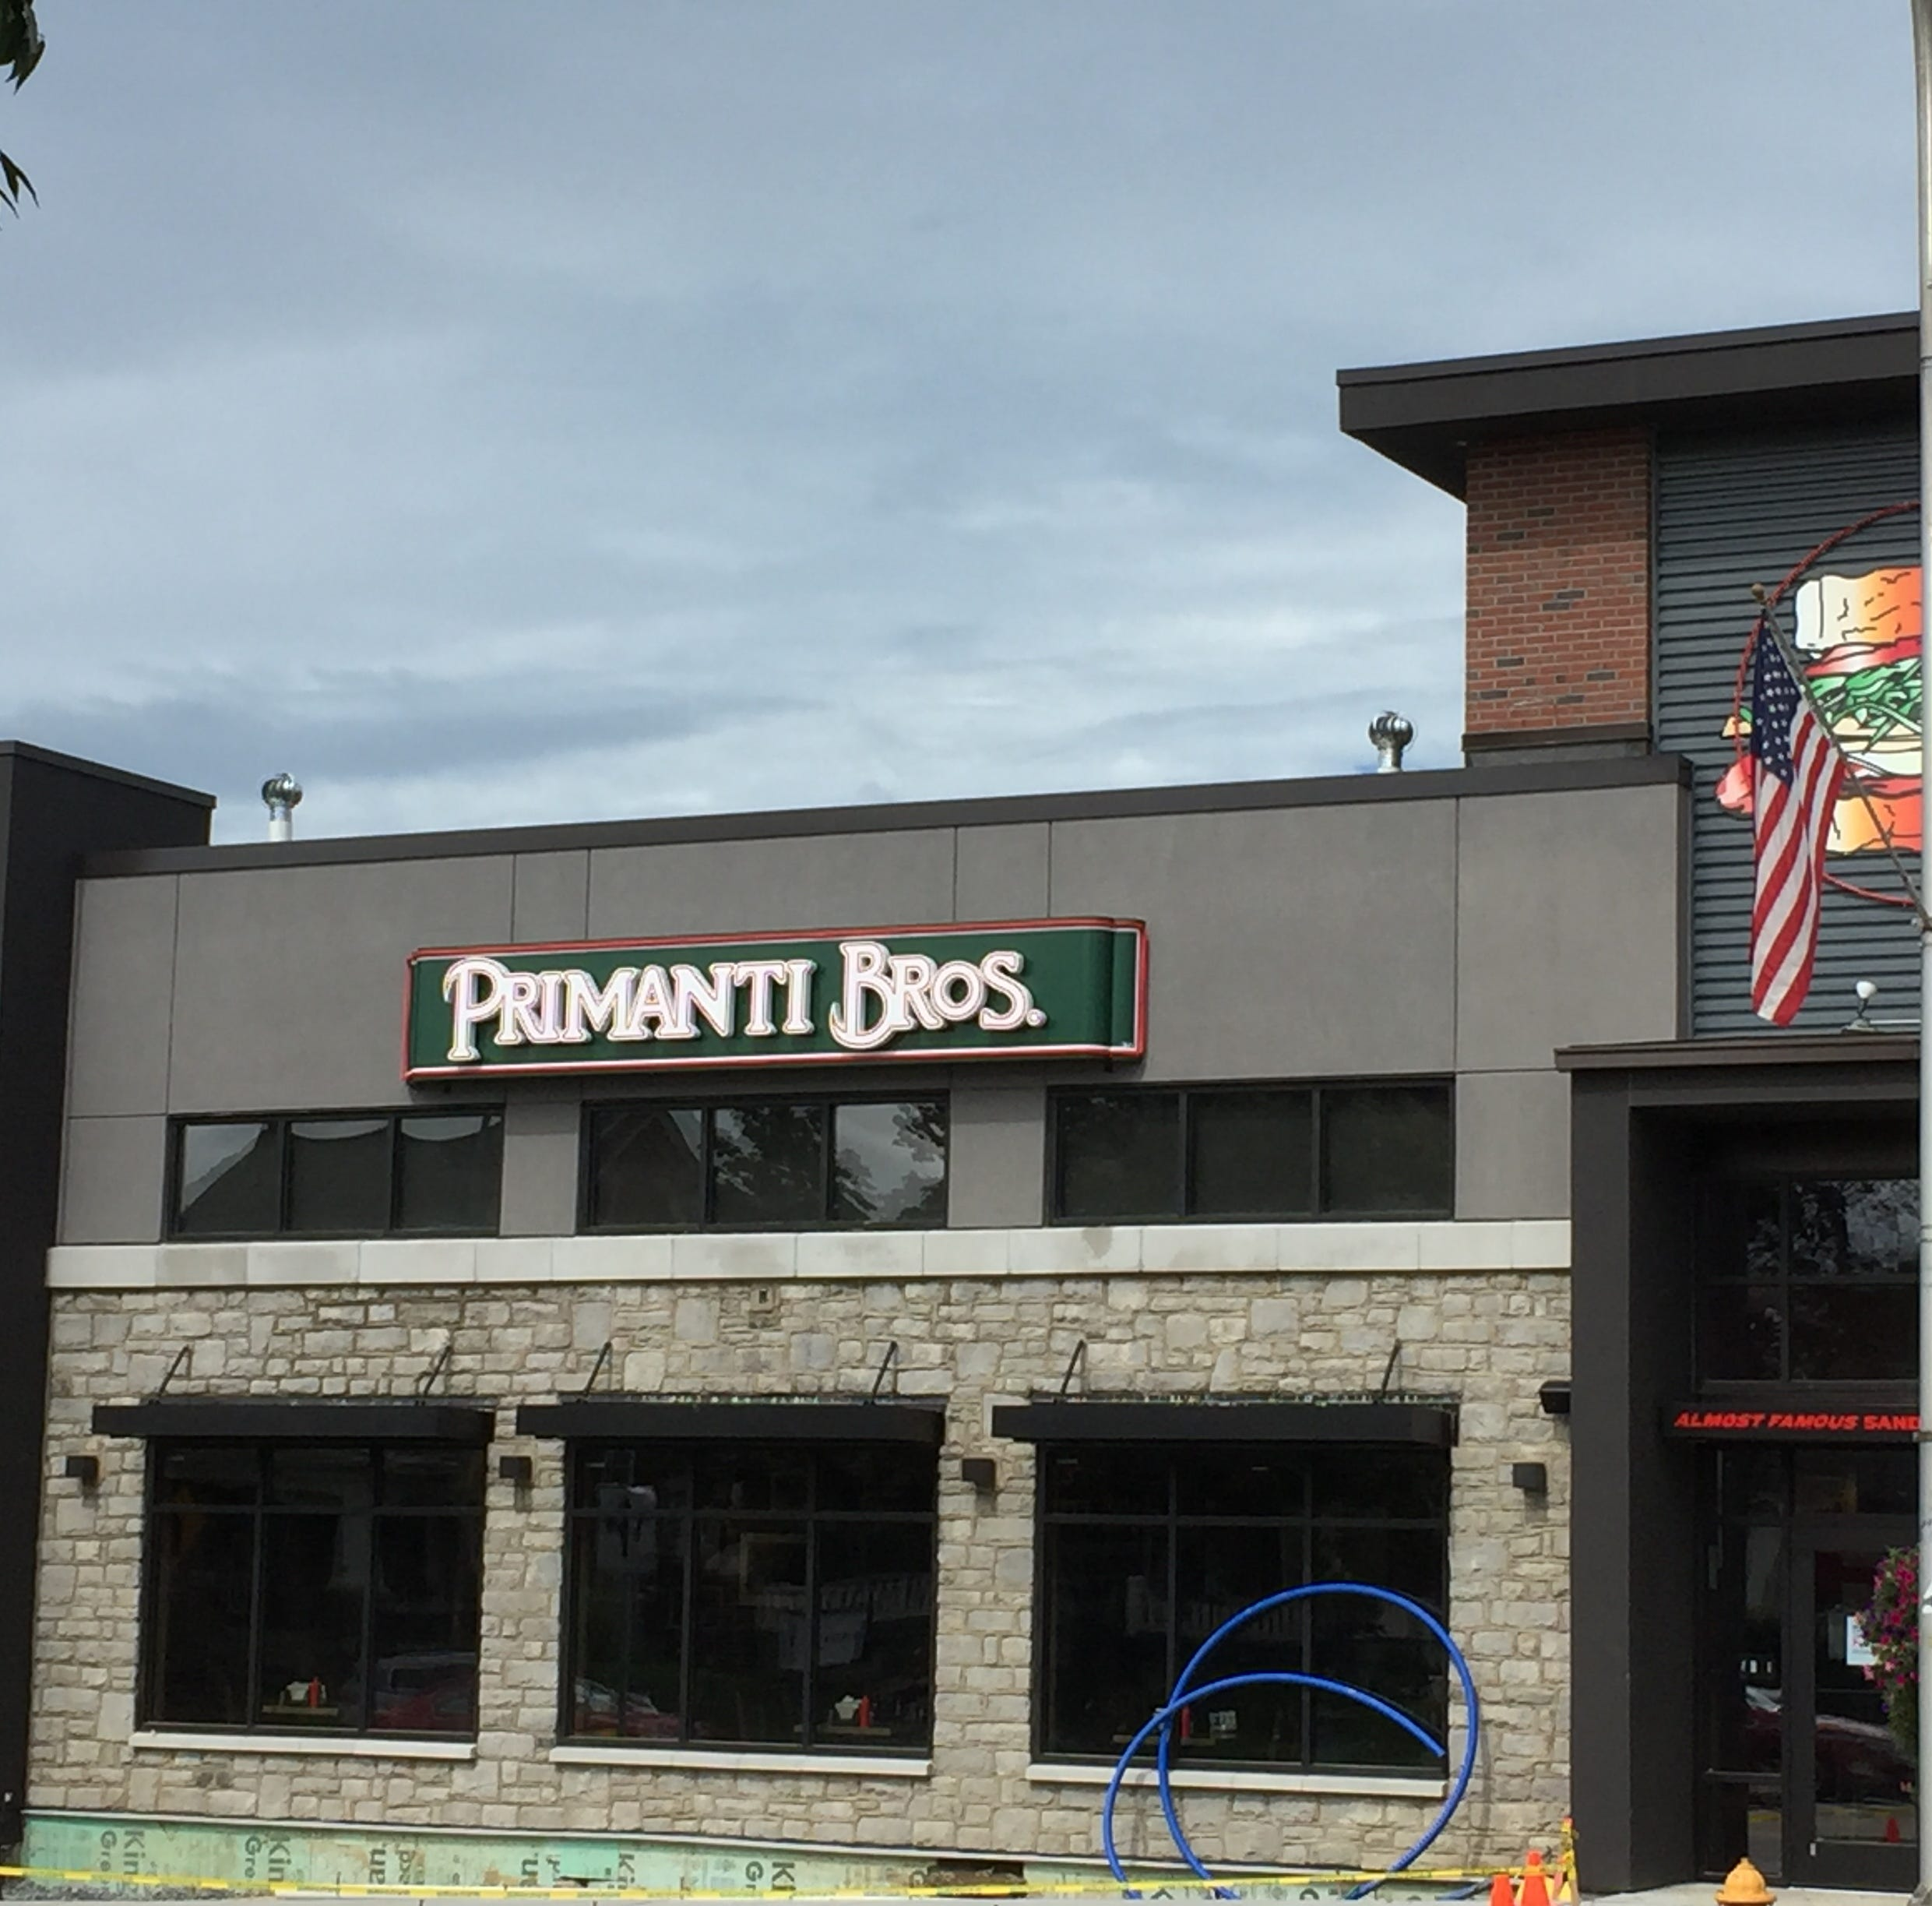 Primanti Bros. is one of the most visible retailers when driving by on Route 422.